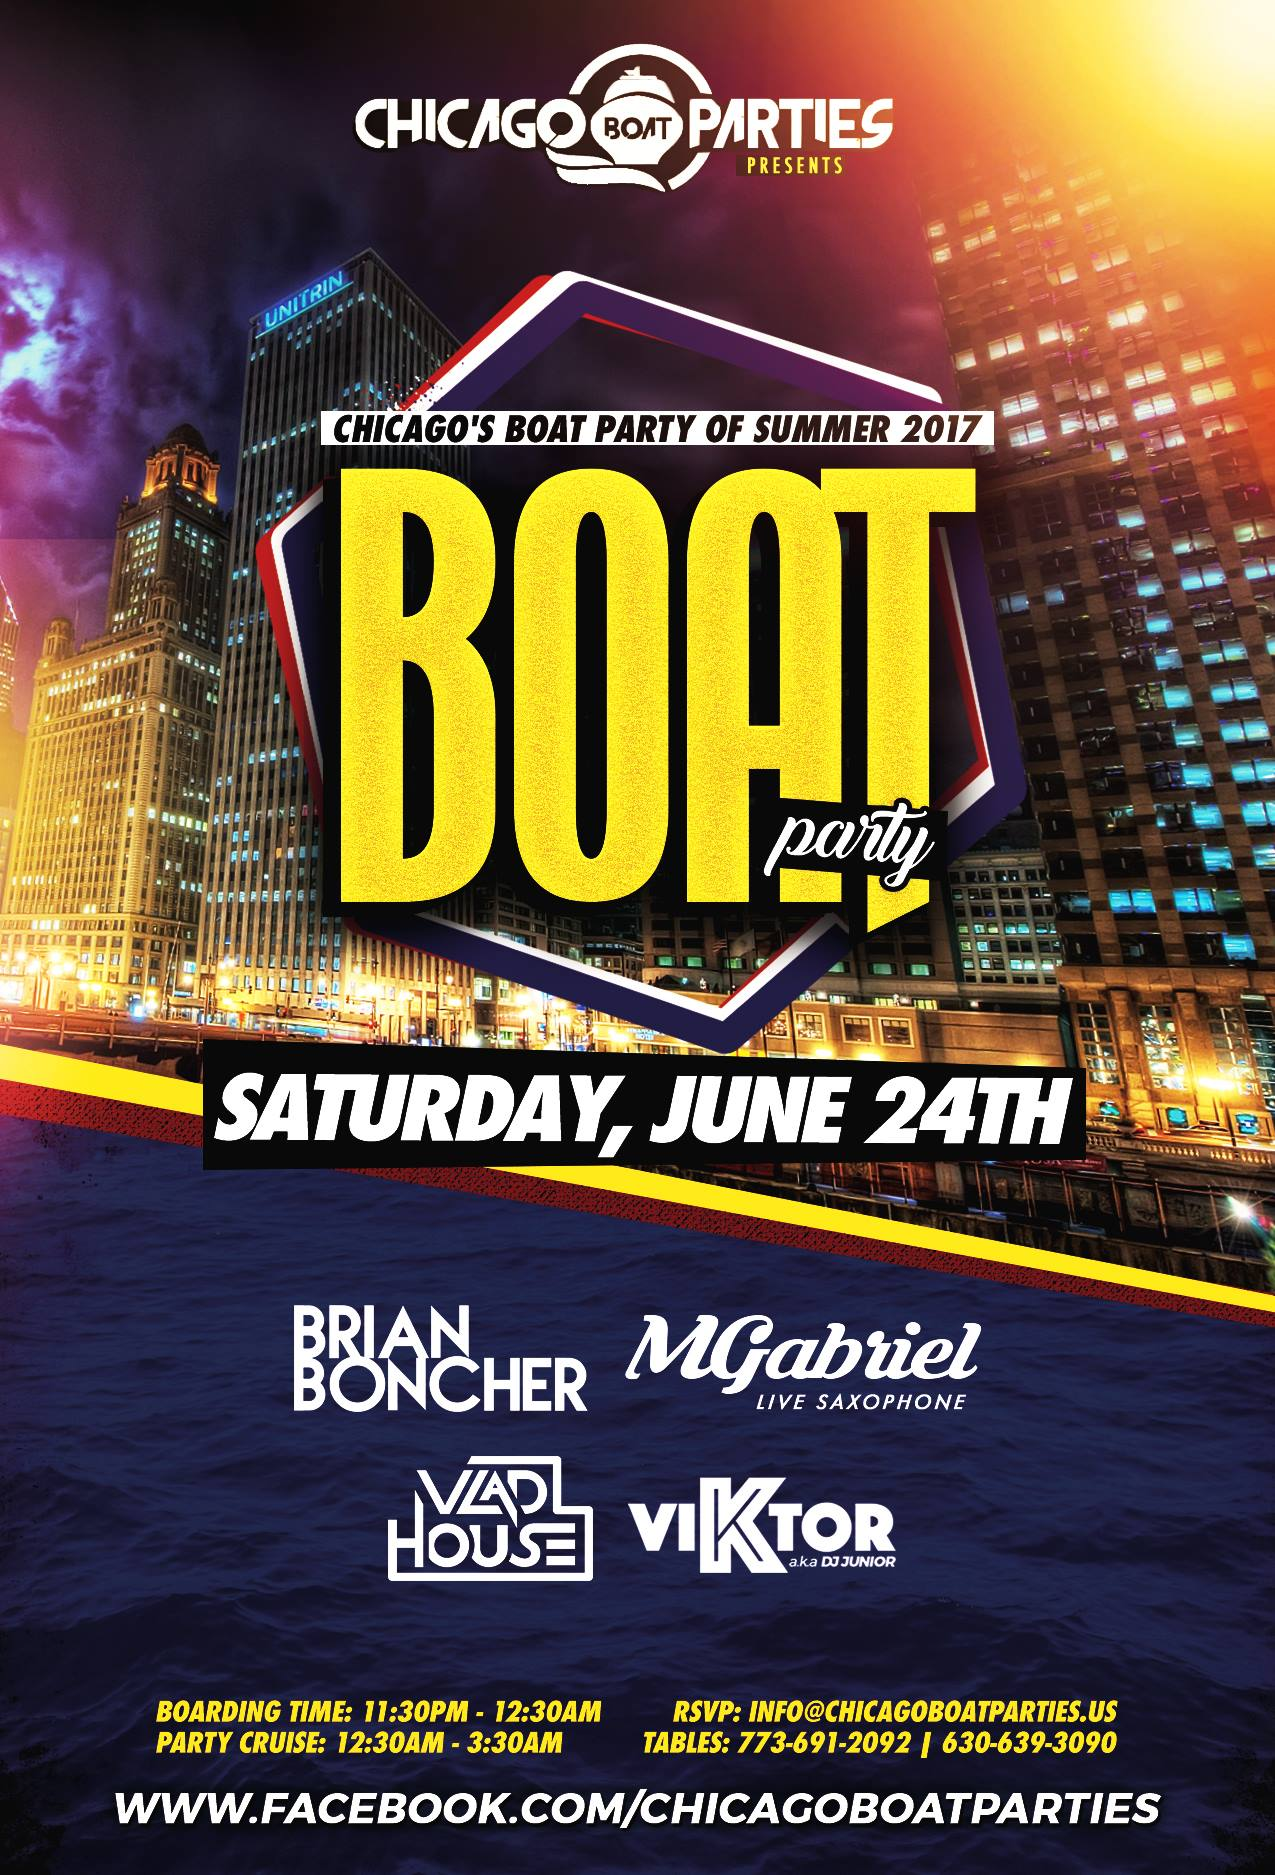 Chicago's Boat Party of Summer 2017 - Saturday, June 24th